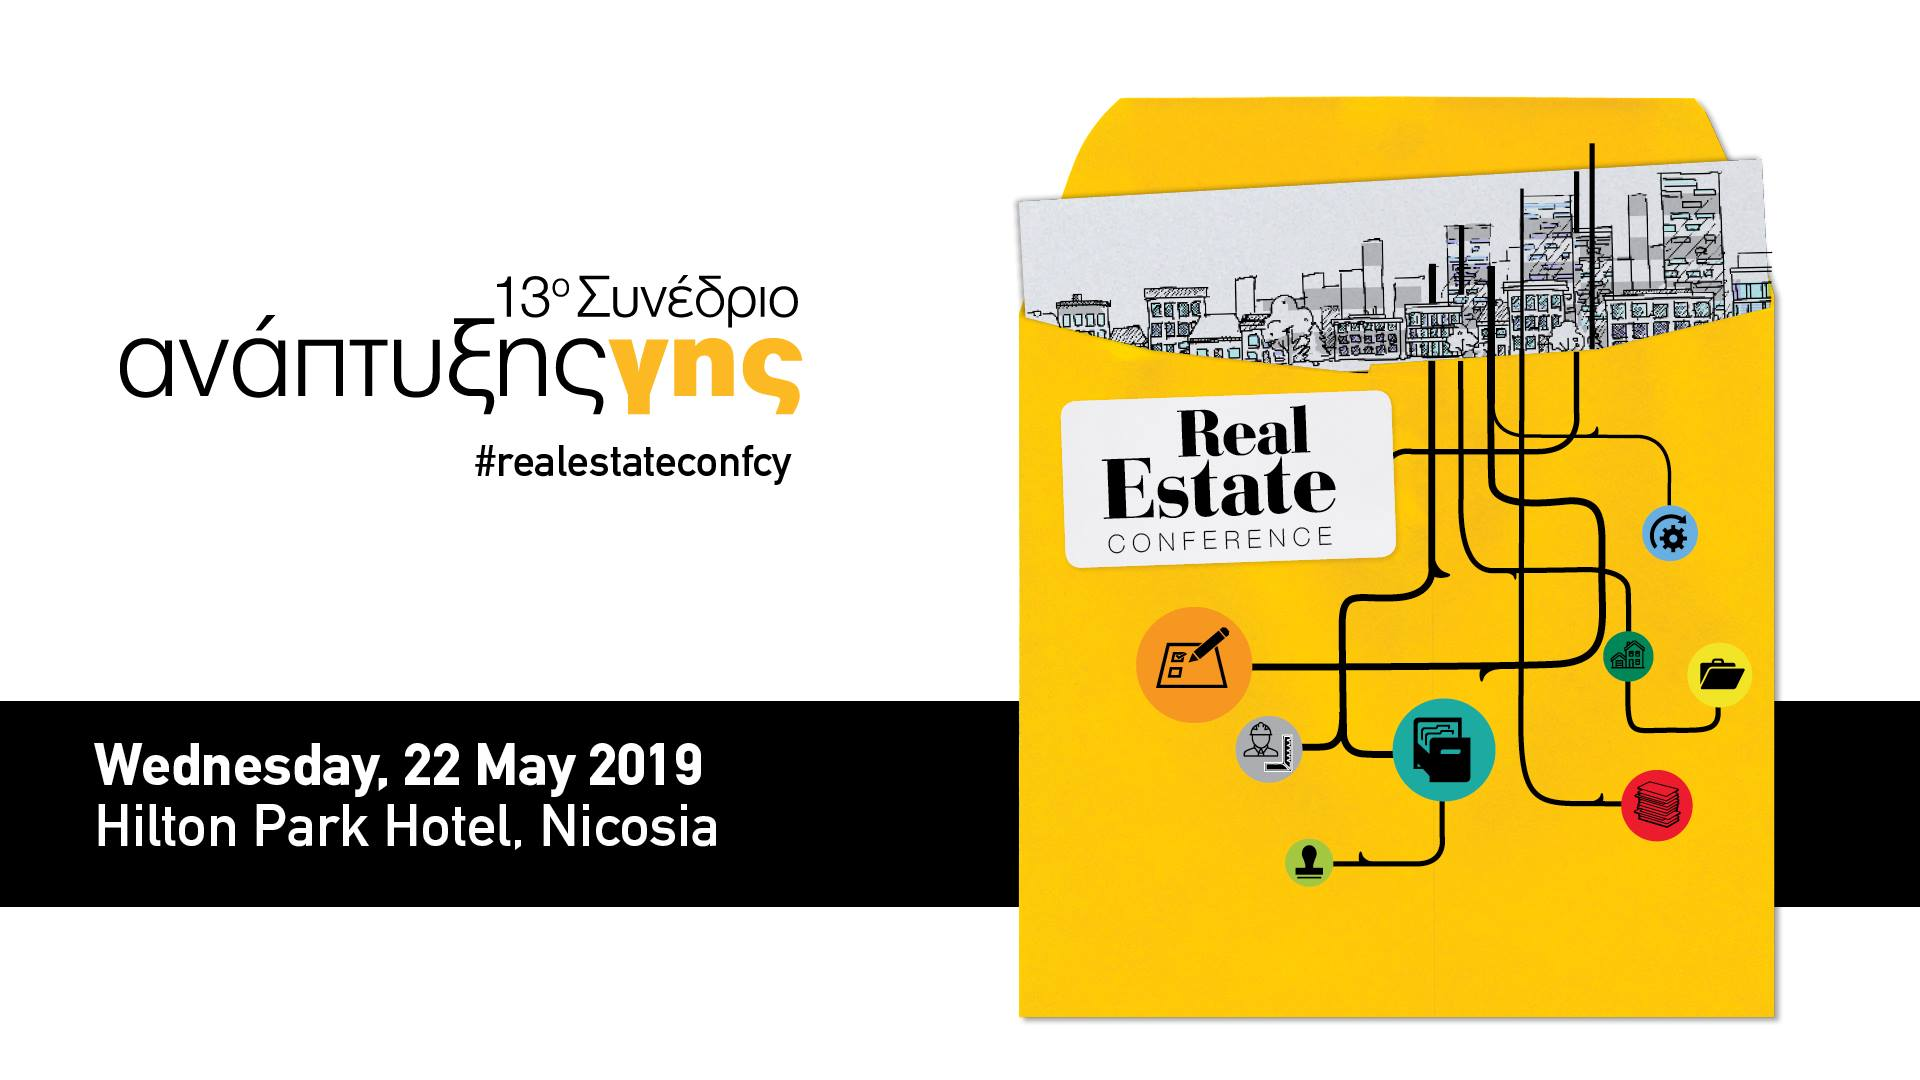 13th Real Estate Conference cyprus cyprusinno event events